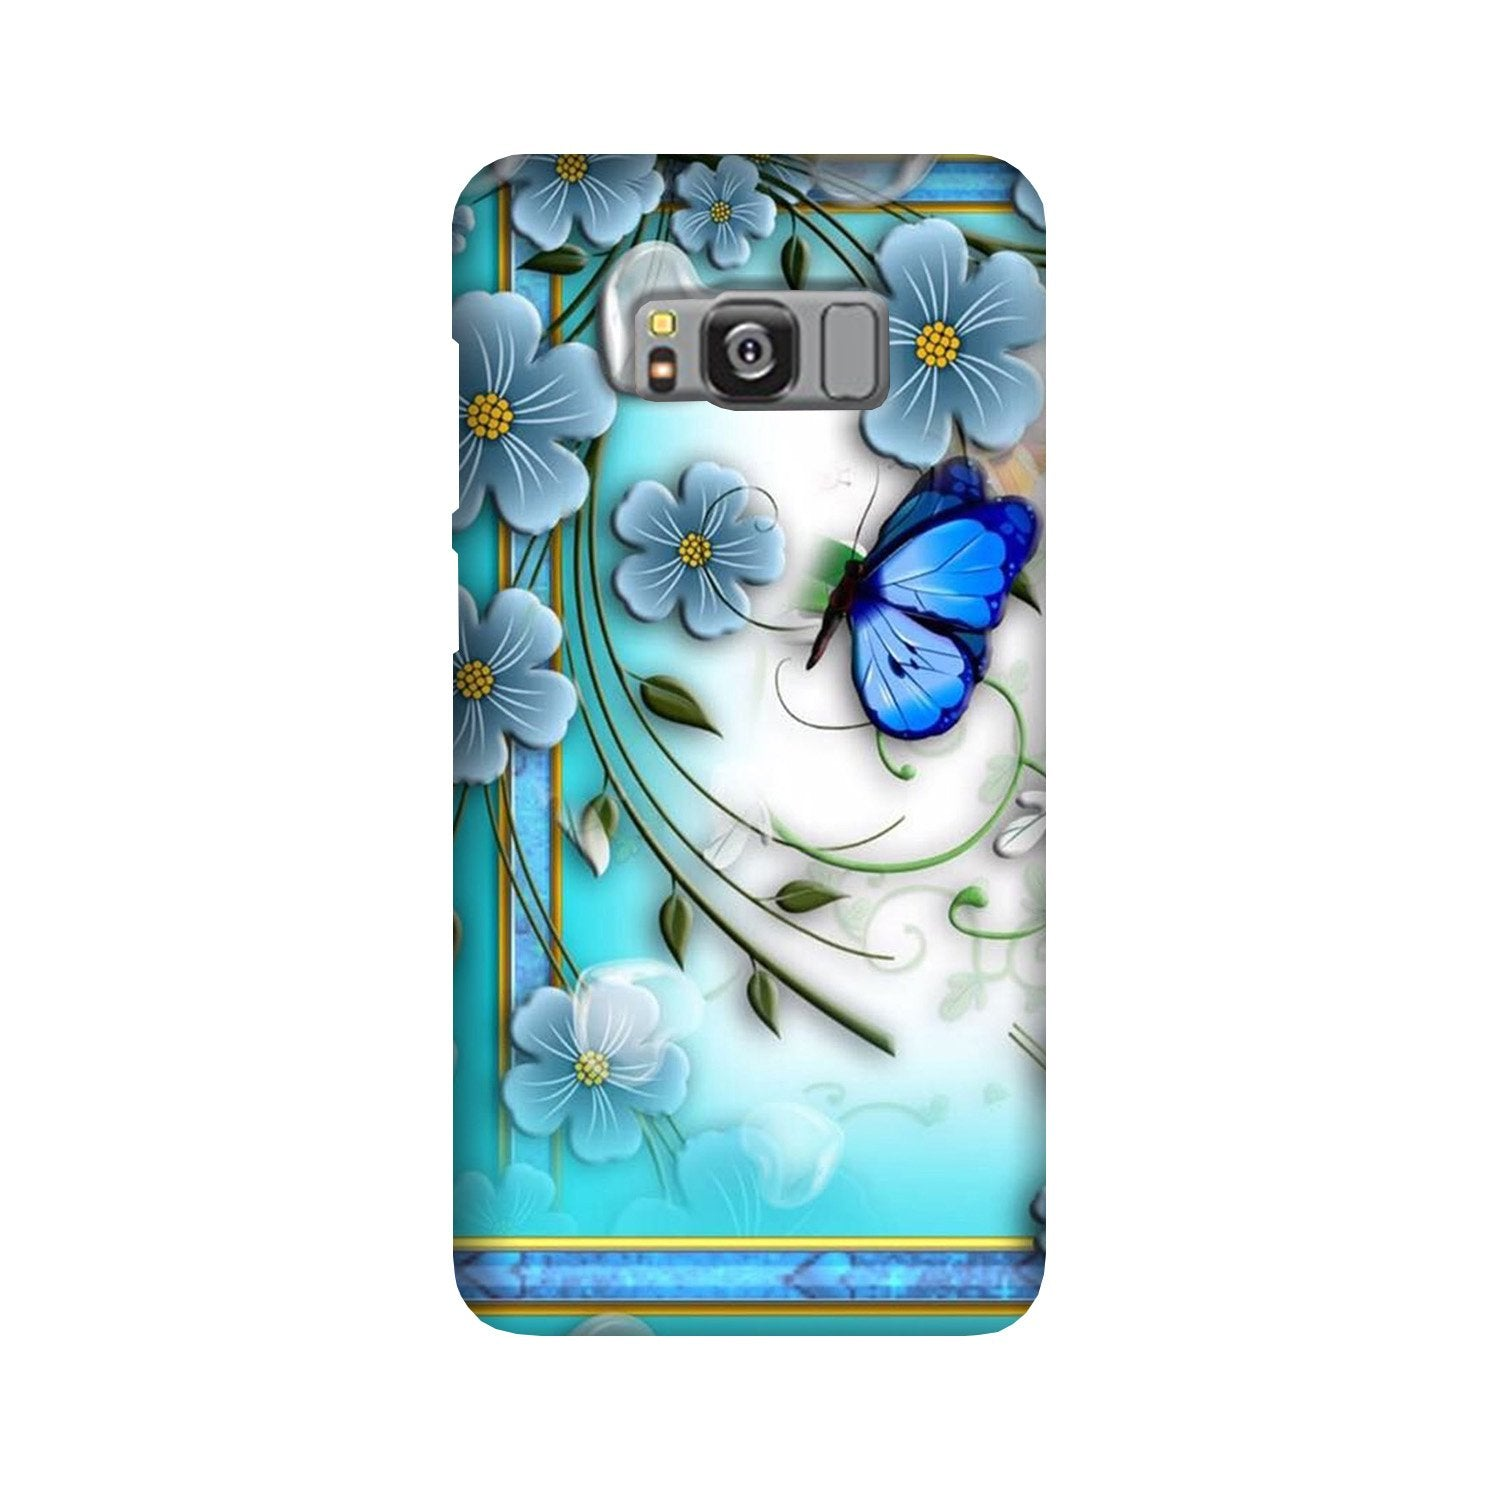 Blue Butterfly Case for Galaxy S8